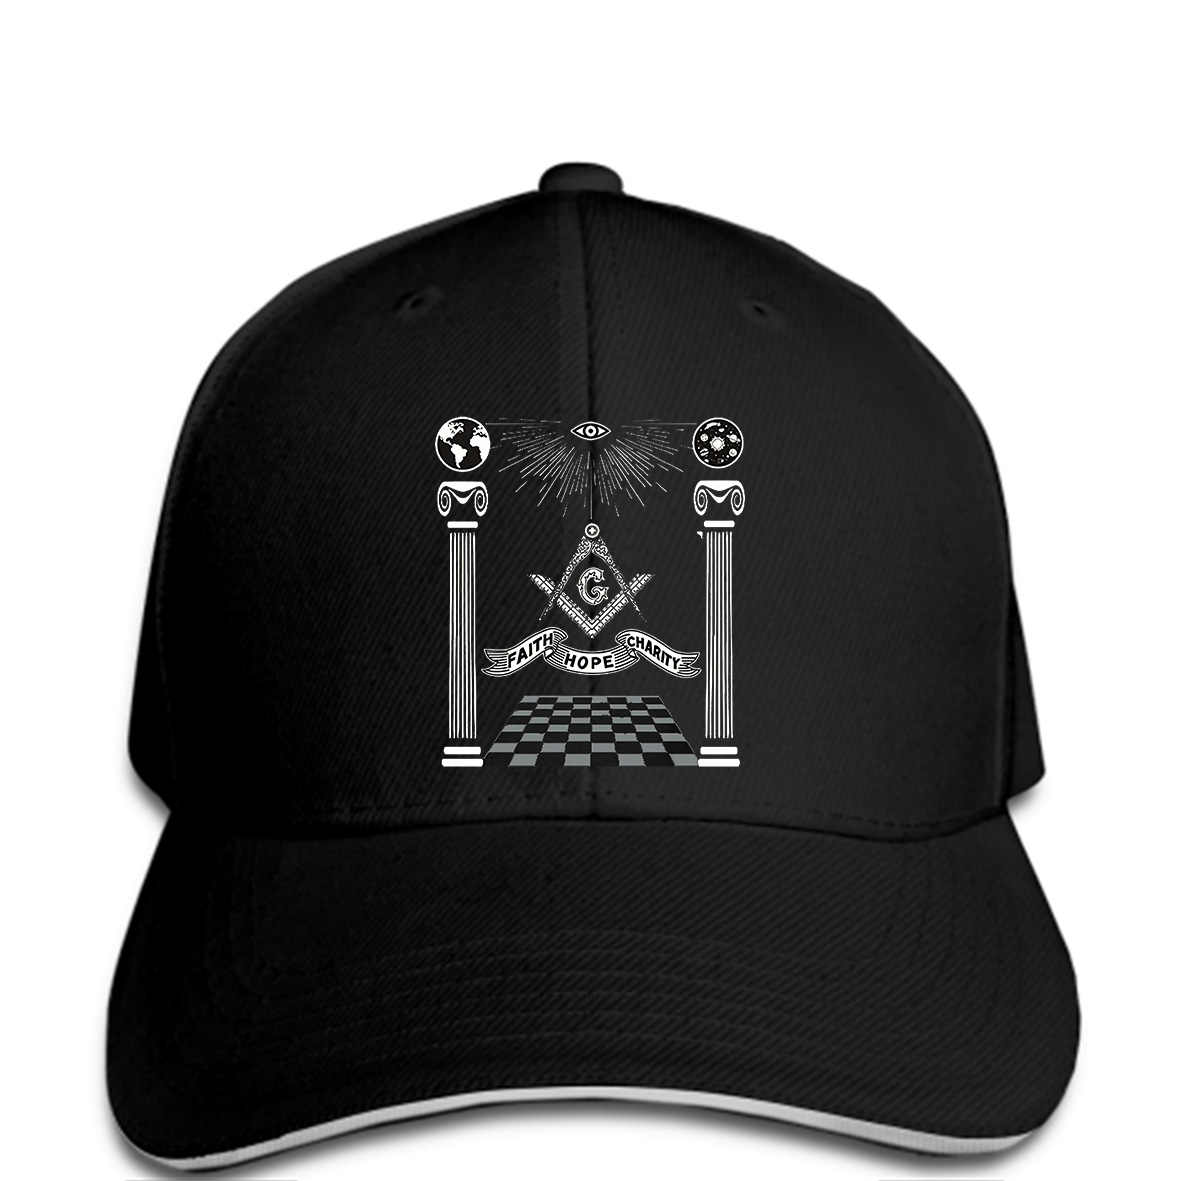 bb38e686 Detail Feedback Questions about Men Baseball cap The Masonic Store Freemason  Faith Hope Charity funny Hat novelty tsnapback women on Aliexpress.com ...